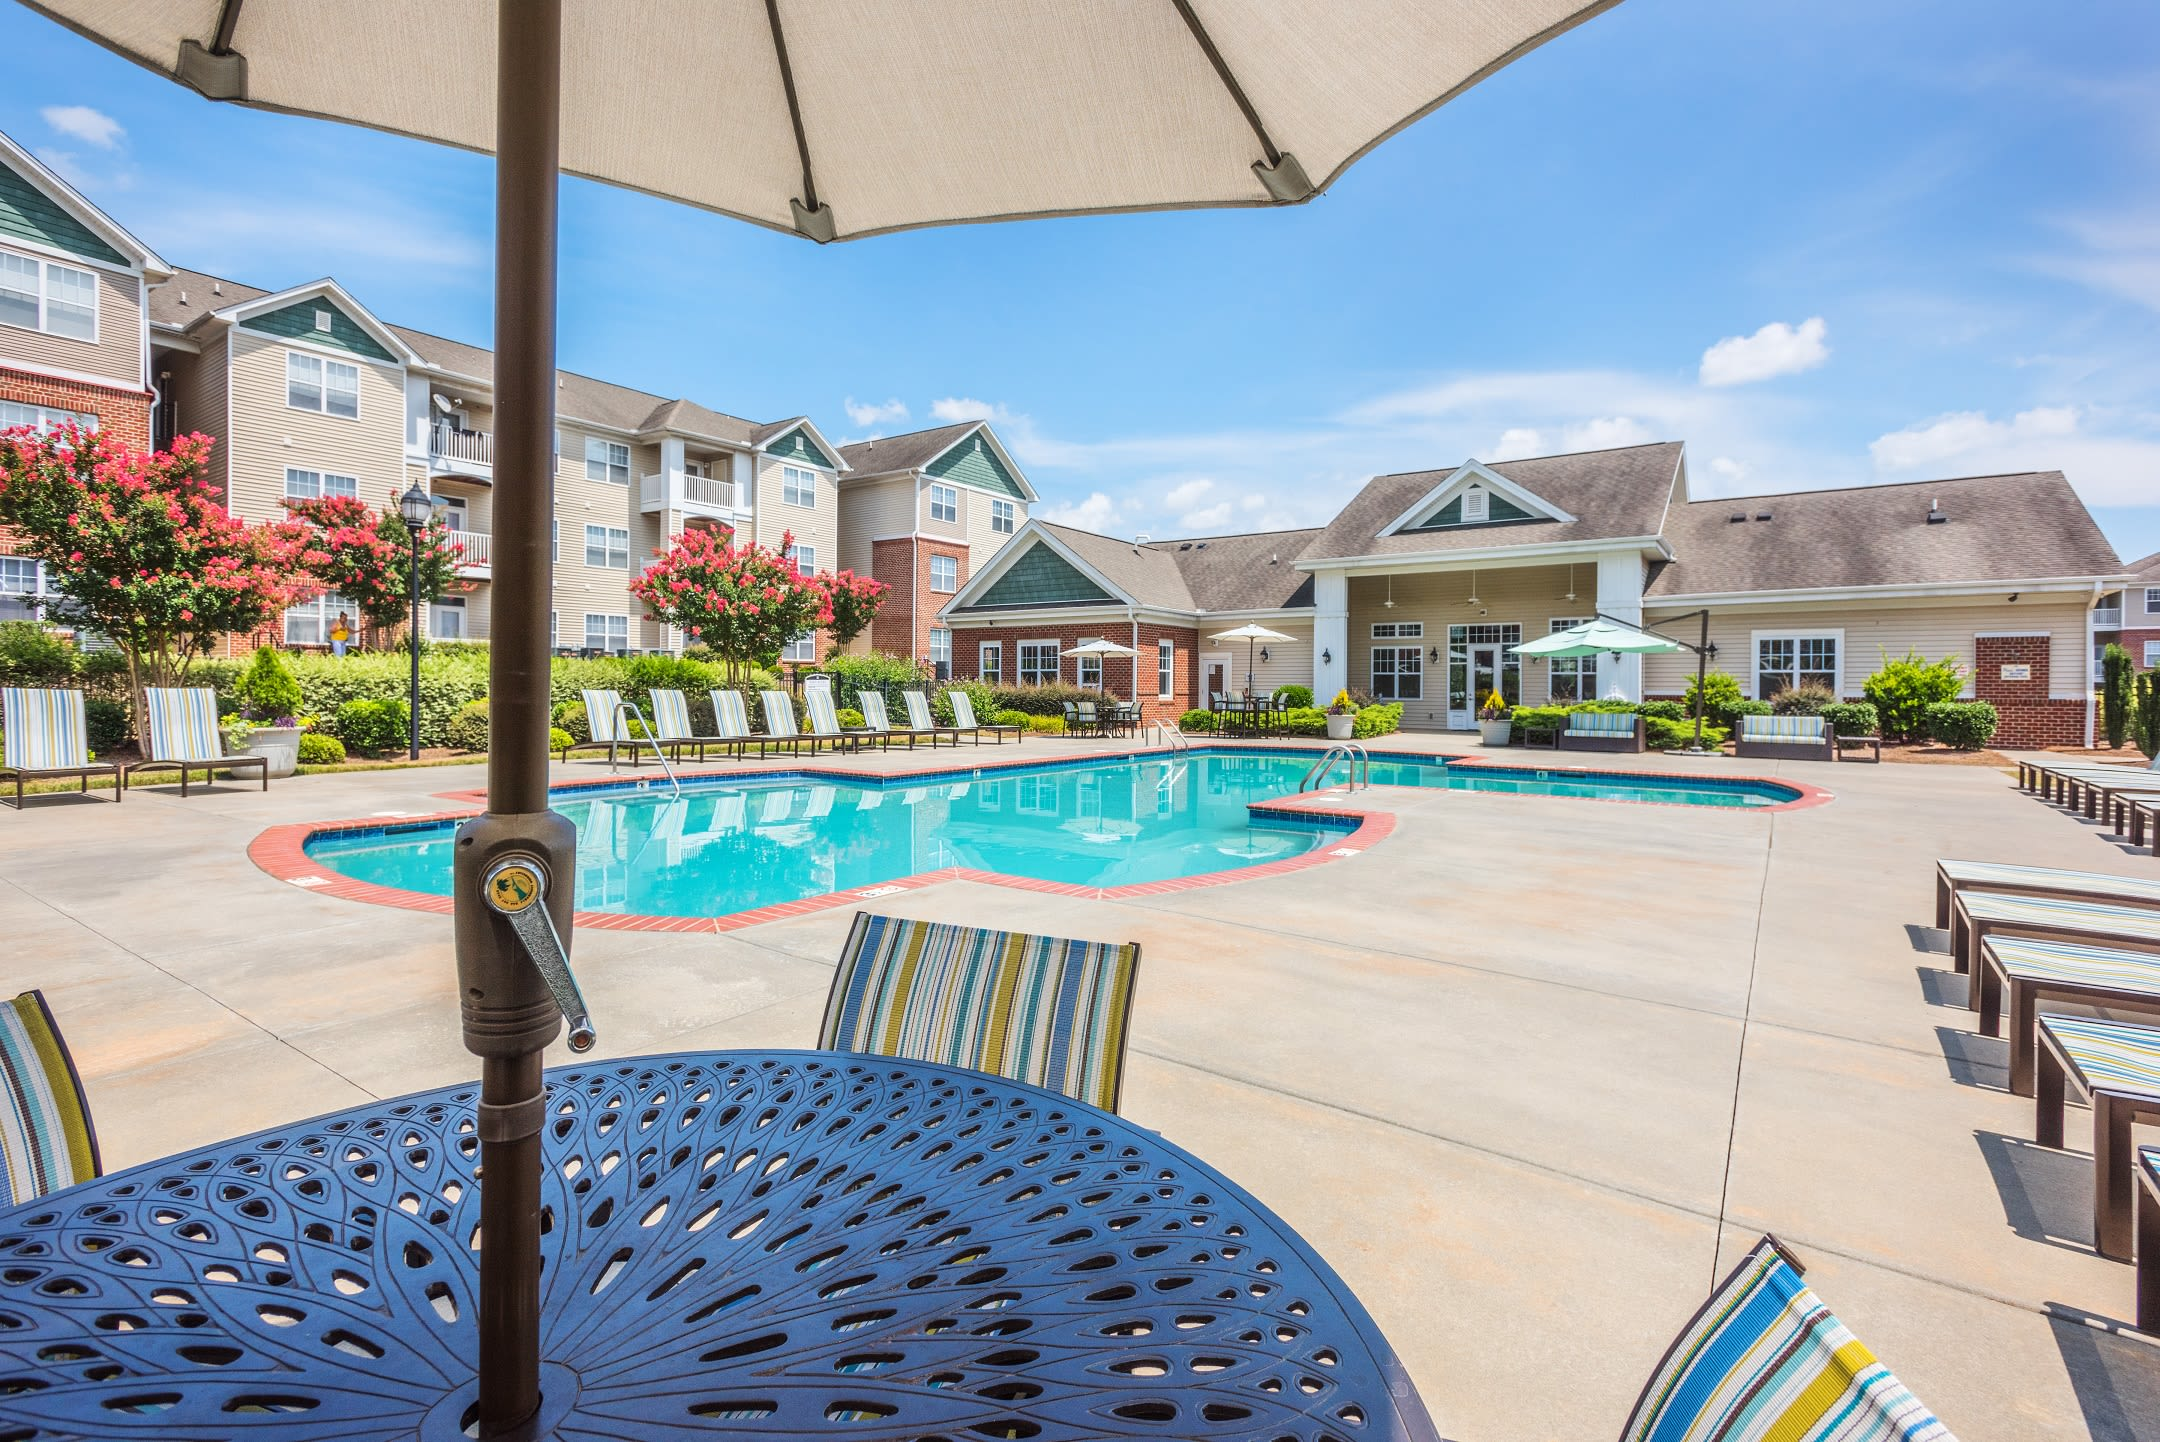 Our state-of-the-art apartments in Charlotte, North Carolina showcase a swimming pool